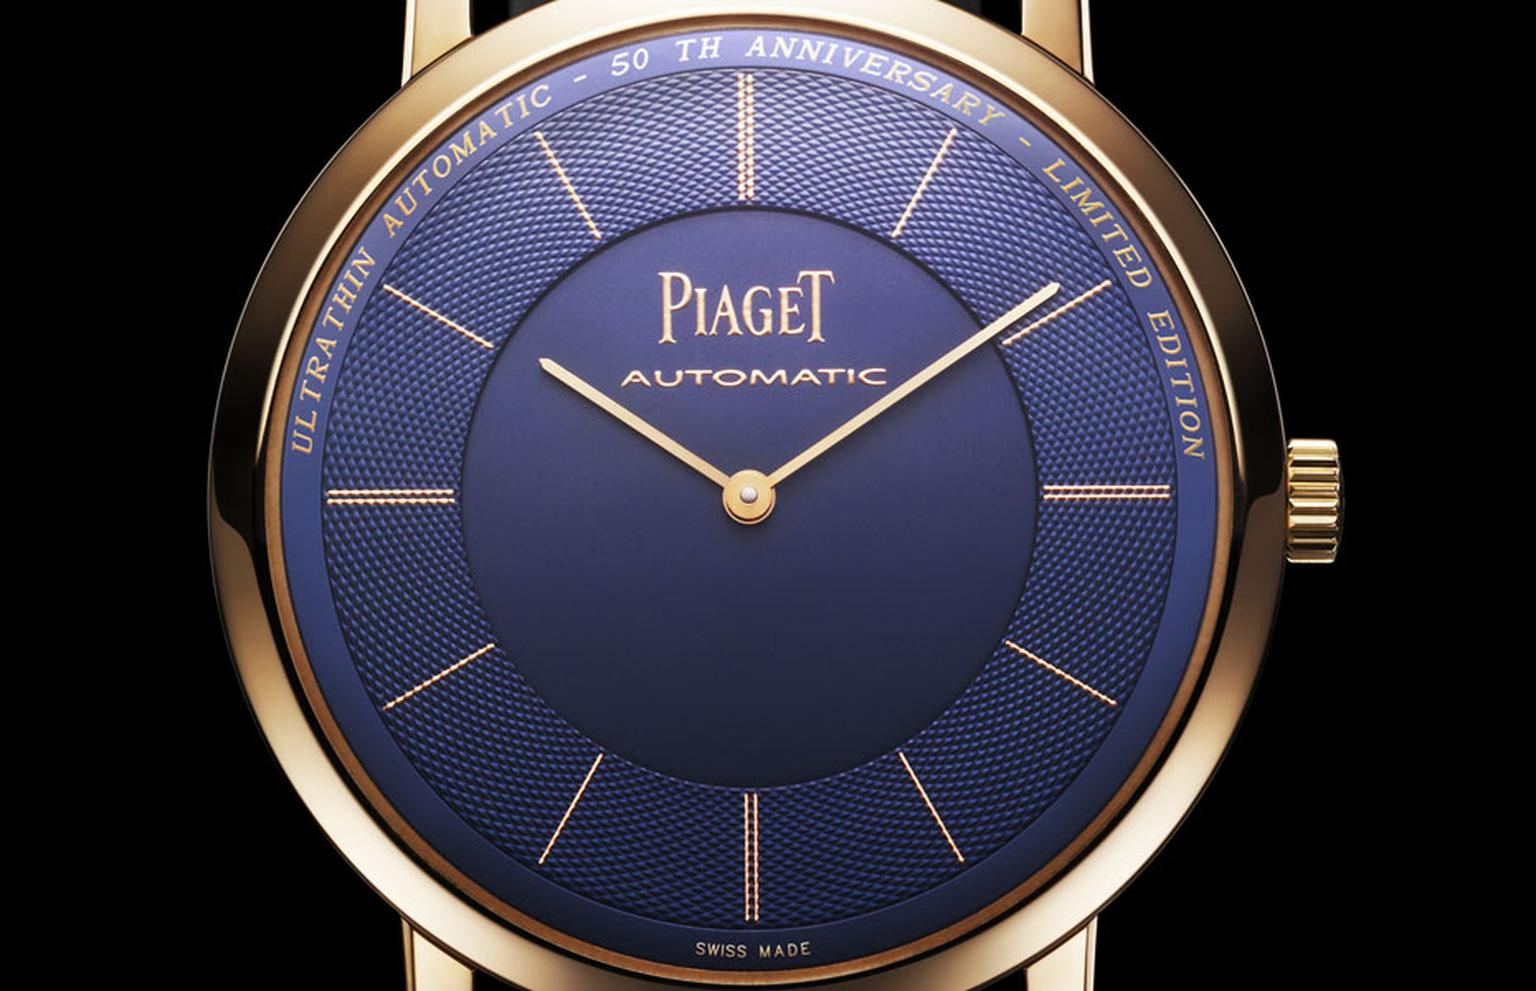 Piaget Altiplano anniversary limited edition in pink gold. The world's thinnest automatic watch and movement